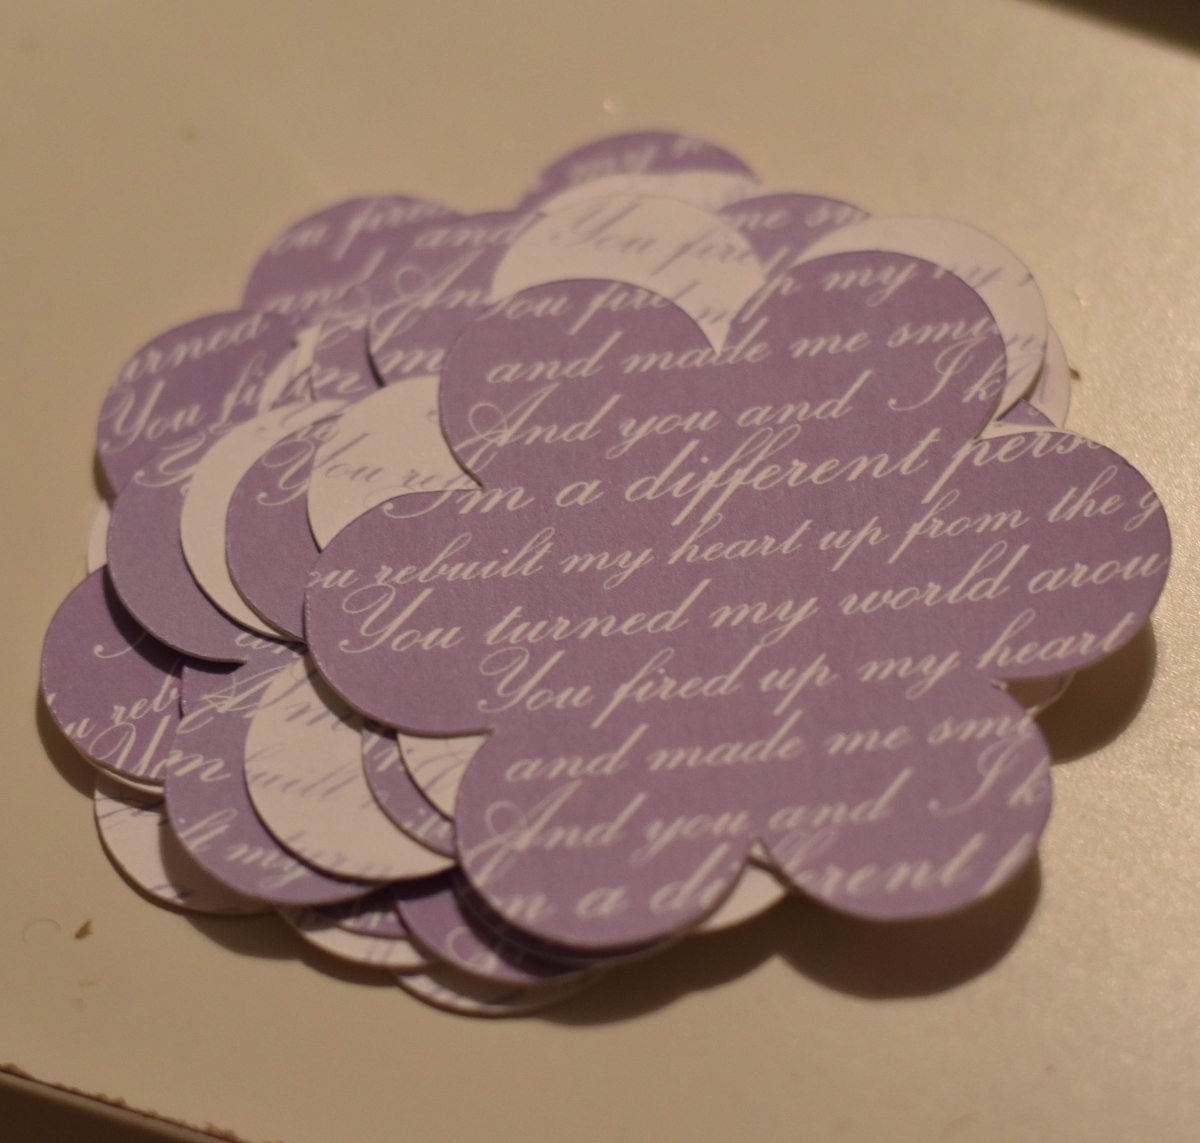 A photograph of a pile of the cut flower shapes with lyrics printed over them